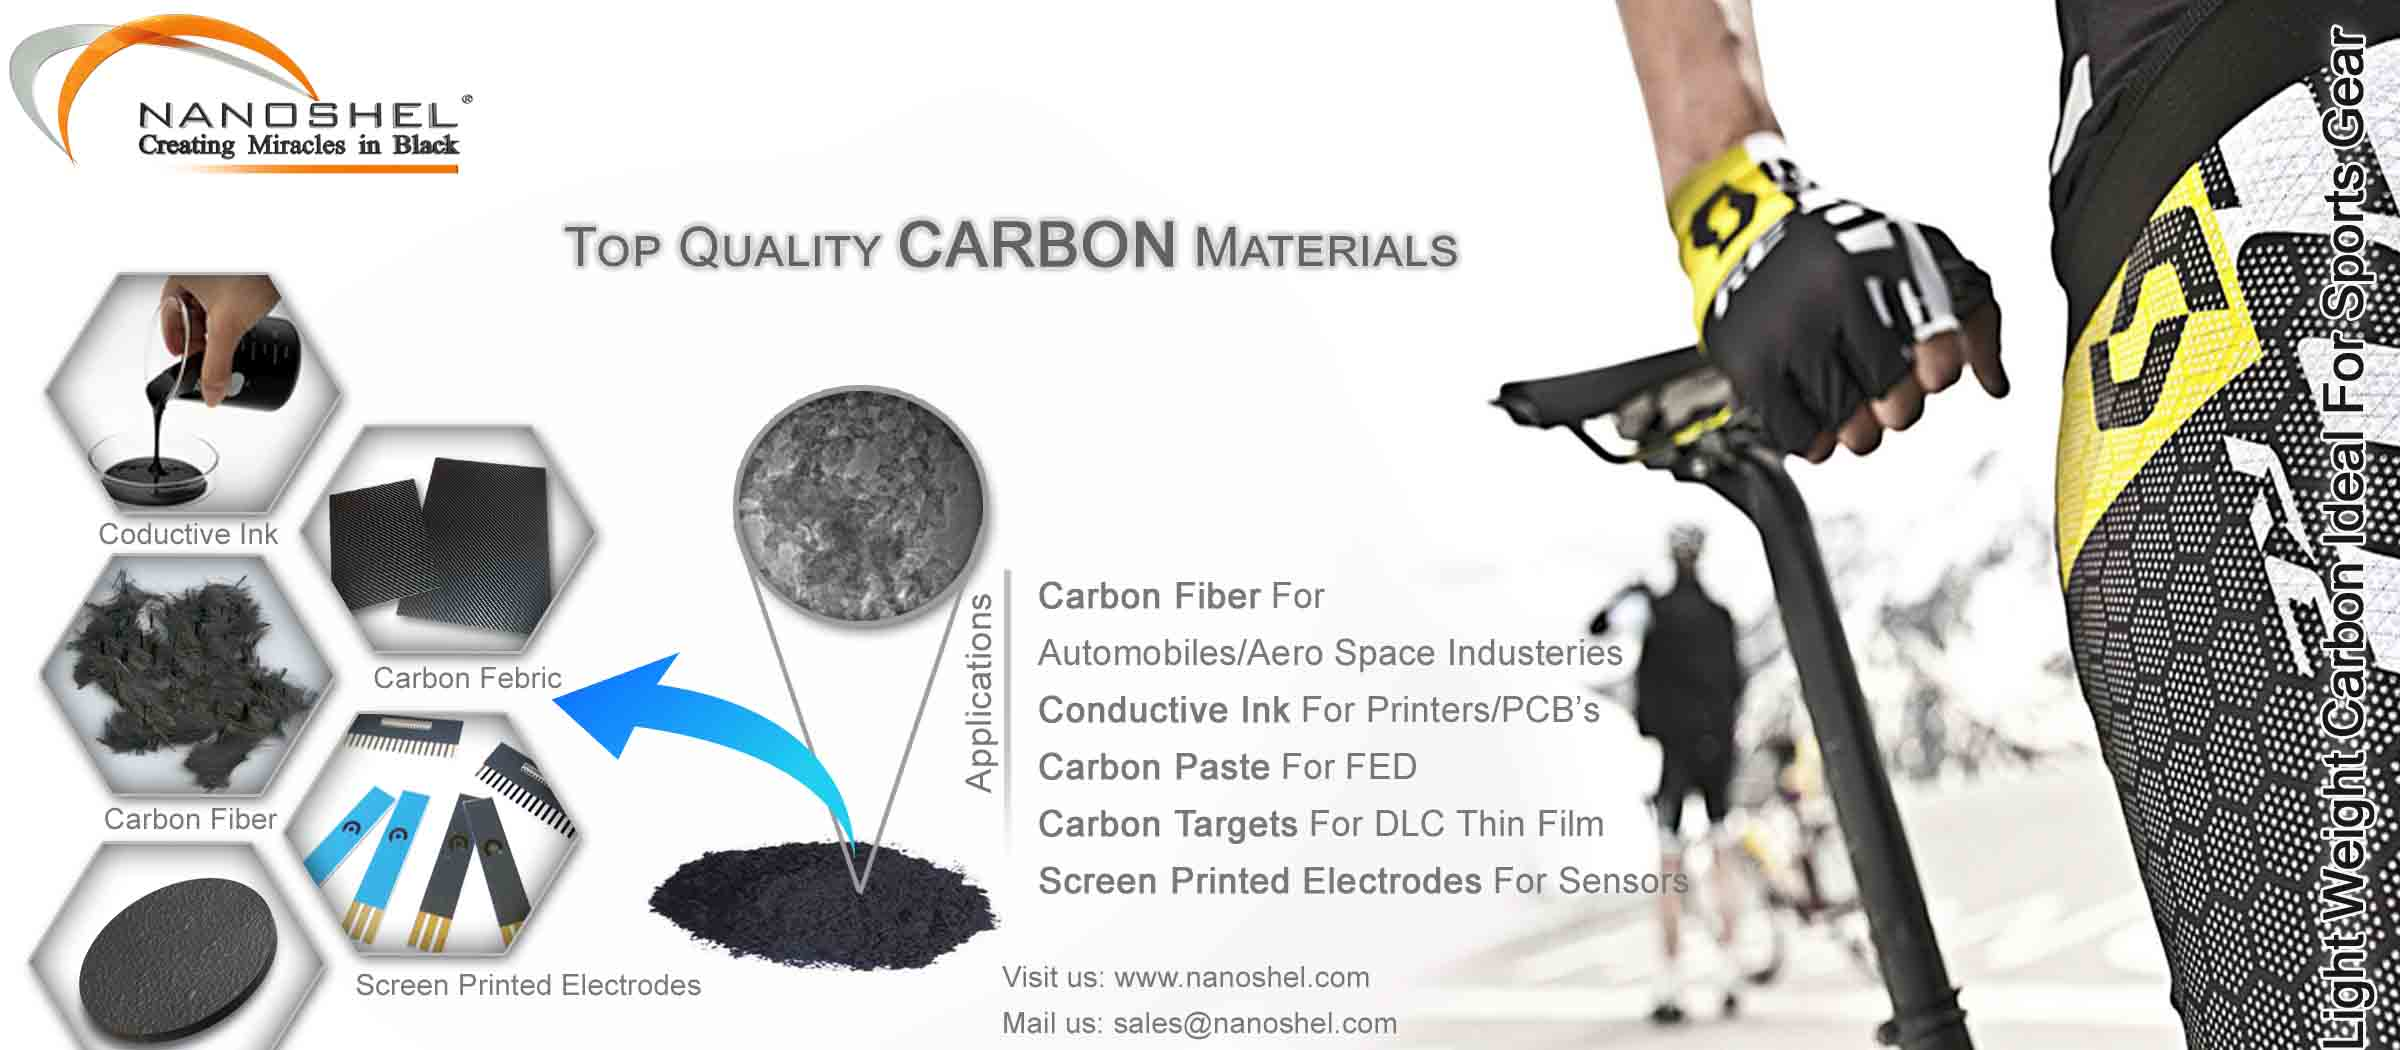 Carbon Fiber Application